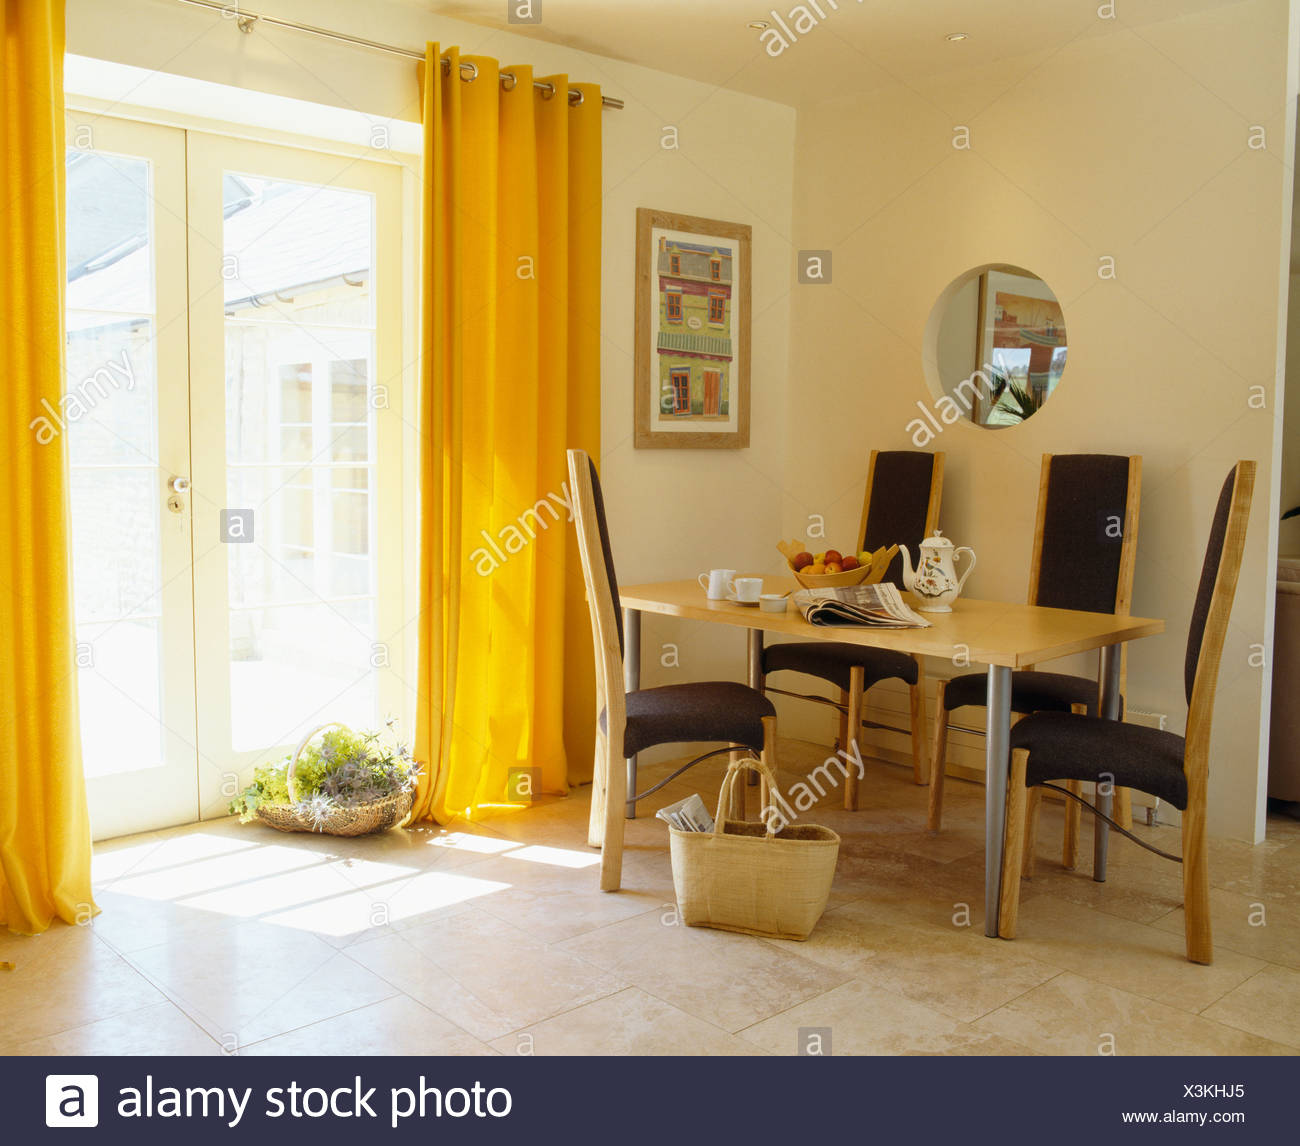 Yellow Curtains And Limestone Flooring In Modern Dining Room With Tall Back Chairs At Simple Table